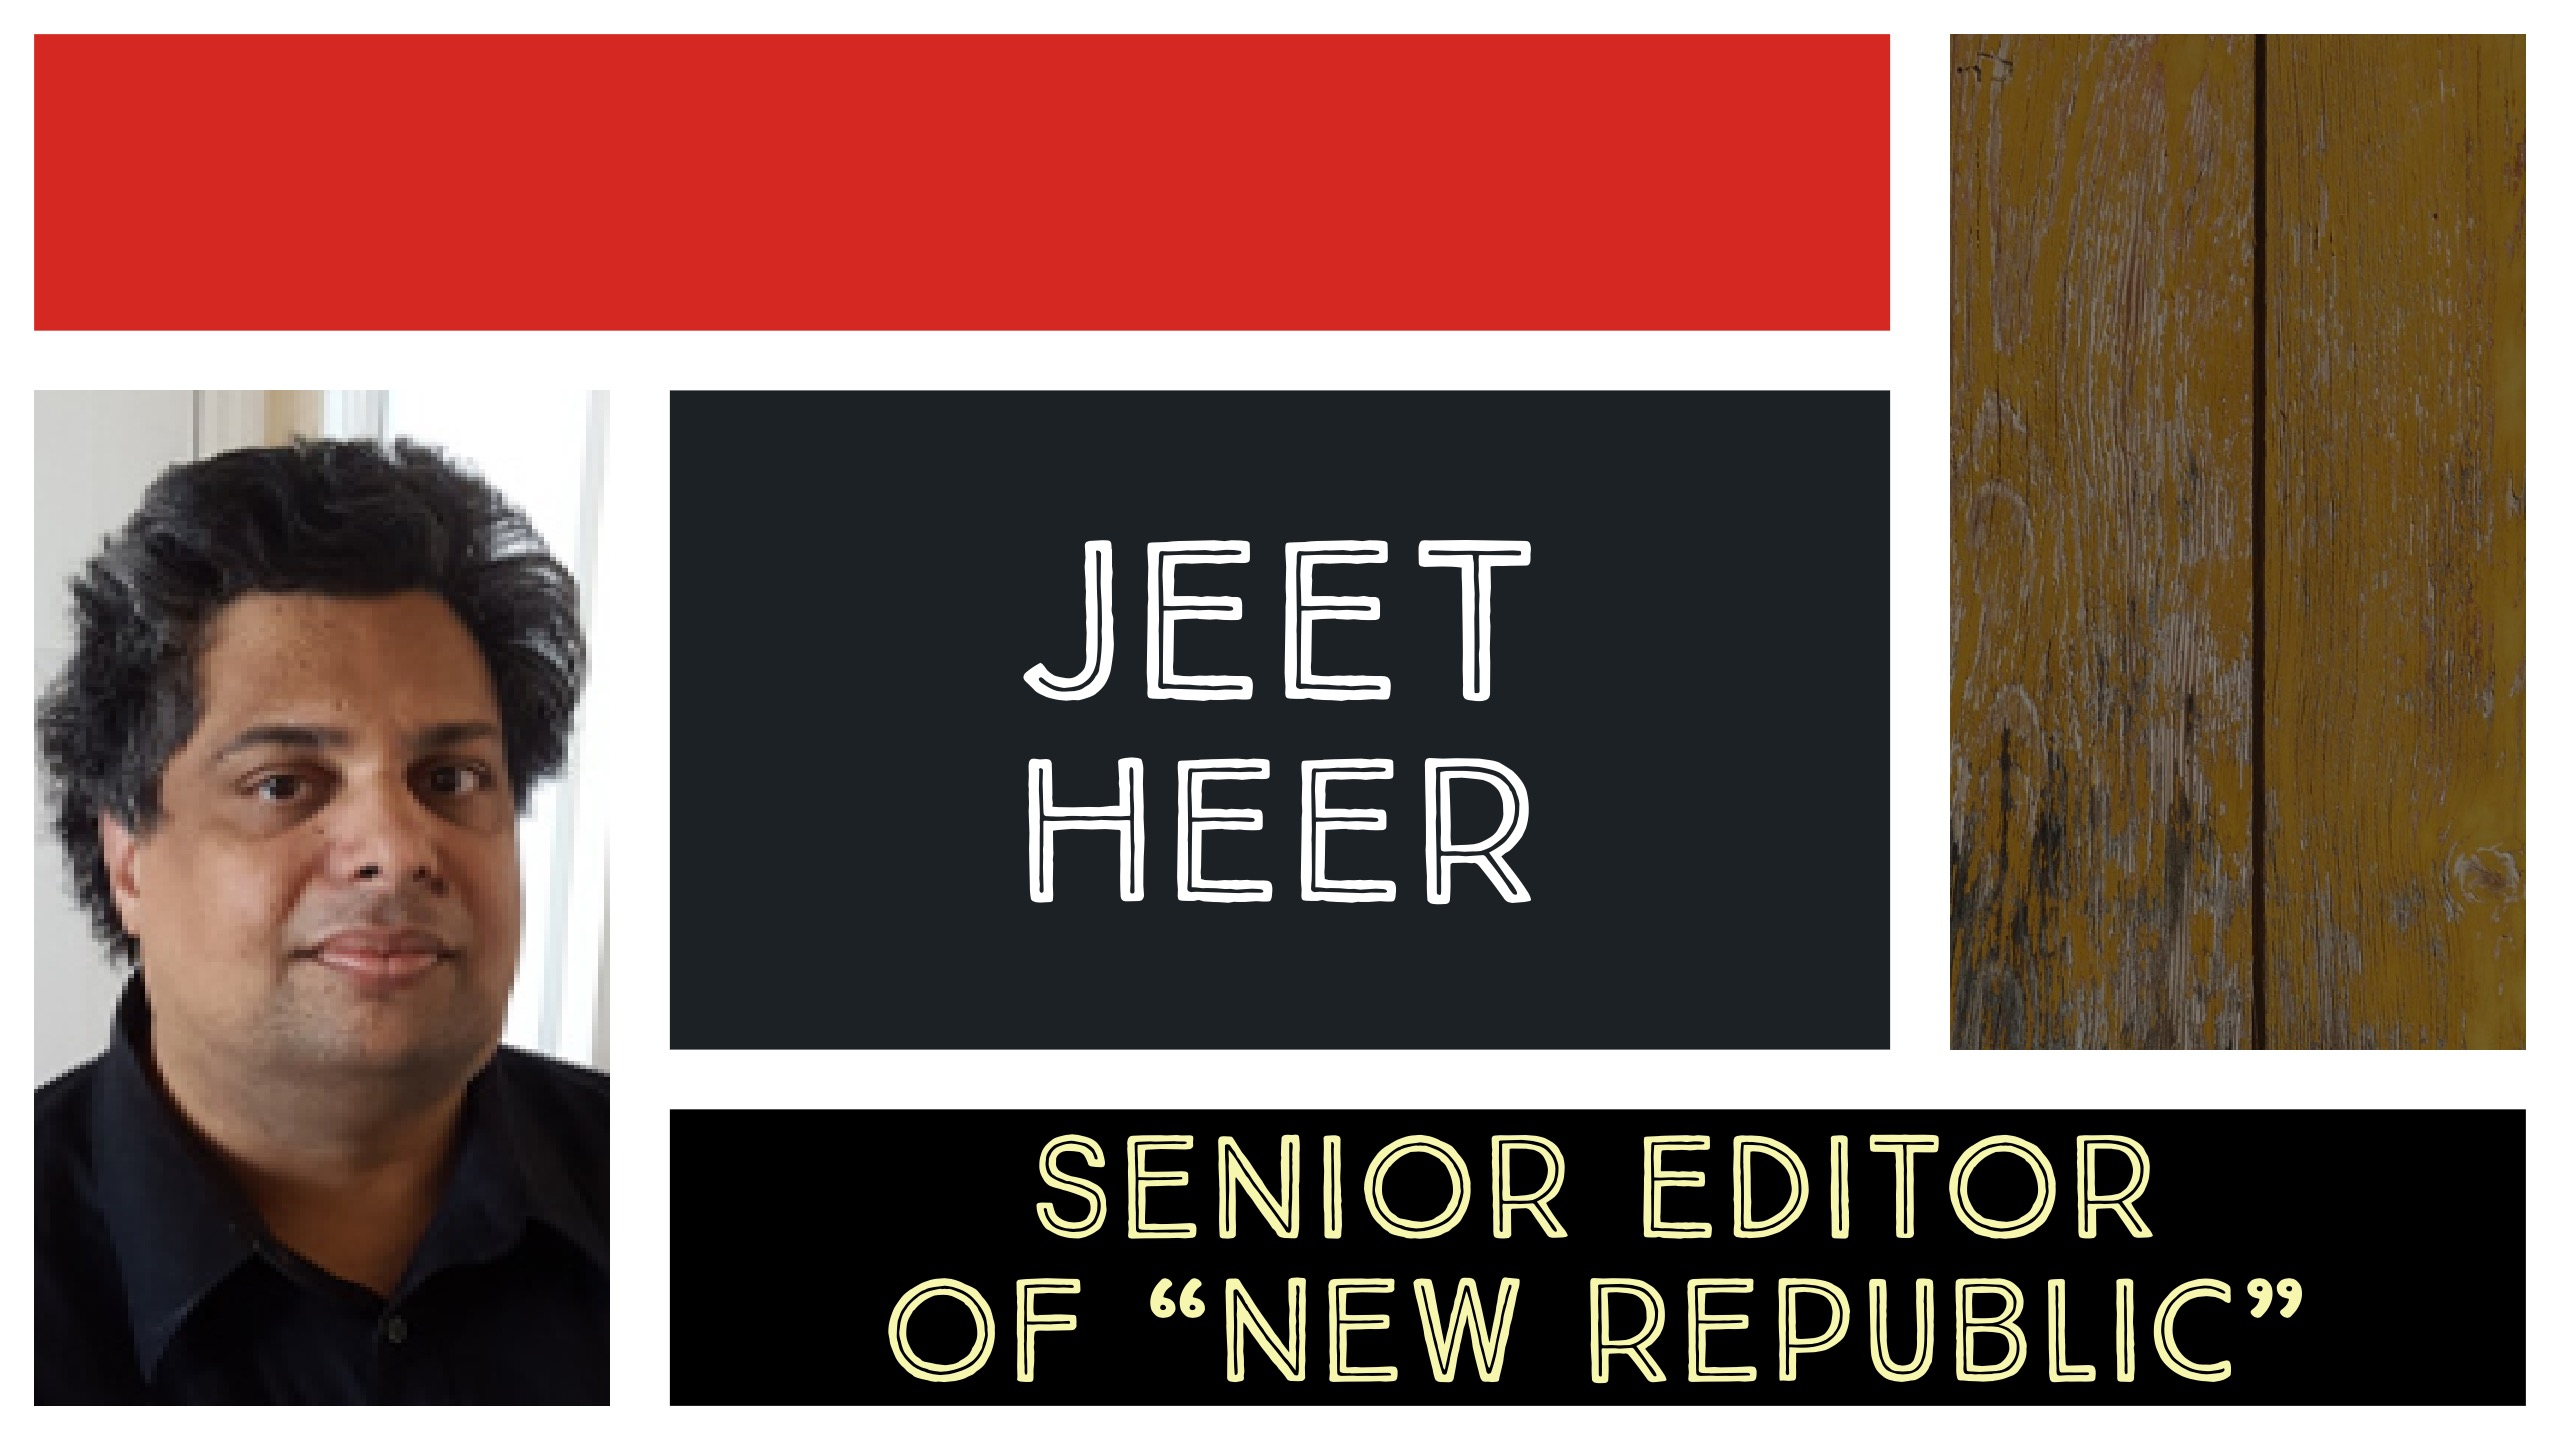 Jeet Heer senior editor of New Republic